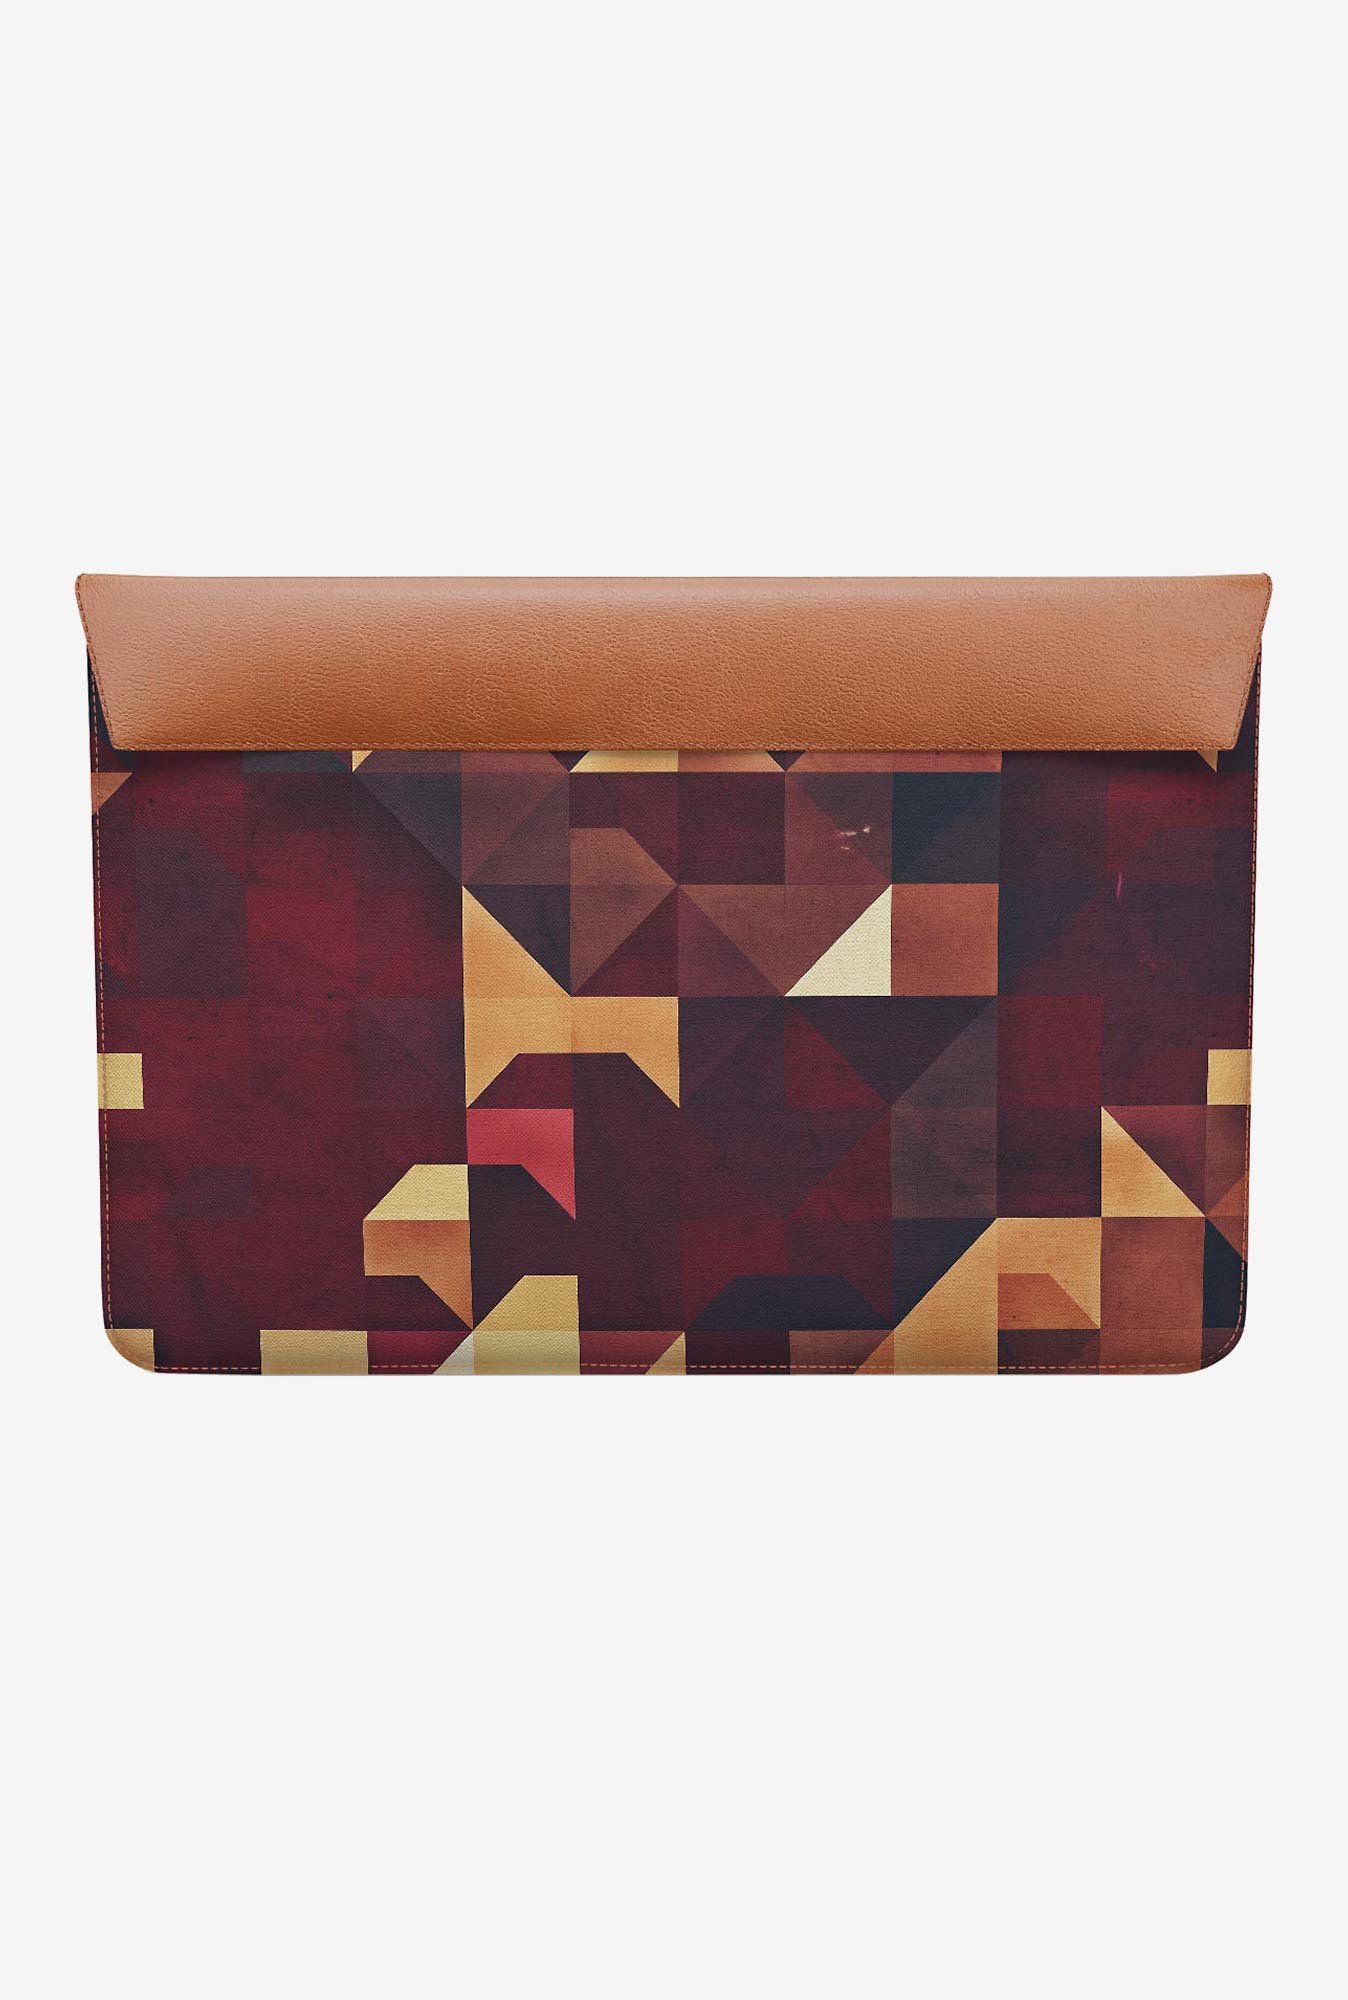 "DailyObjects Smykyngg Rwwmm Macbook Air 11"" Envelope Sleeve"